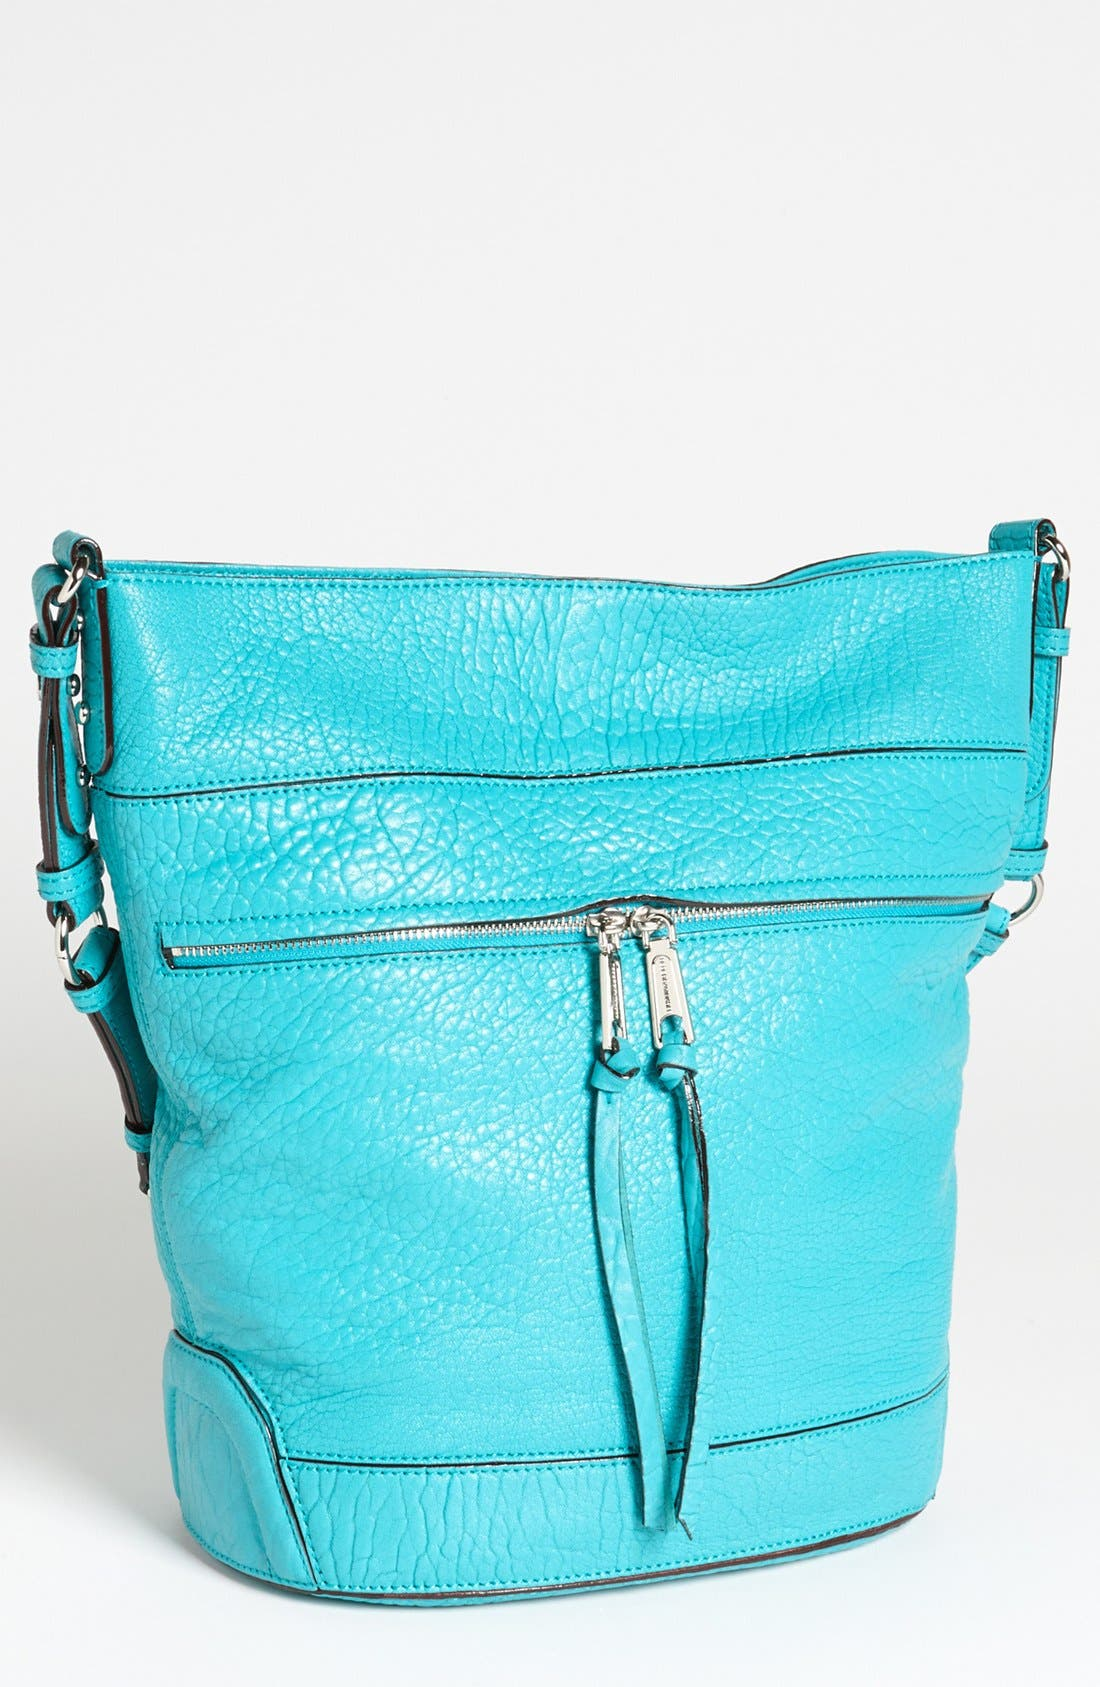 Alternate Image 1 Selected - Rebecca Minkoff 'Bubble - Quinn' Bucket Bag